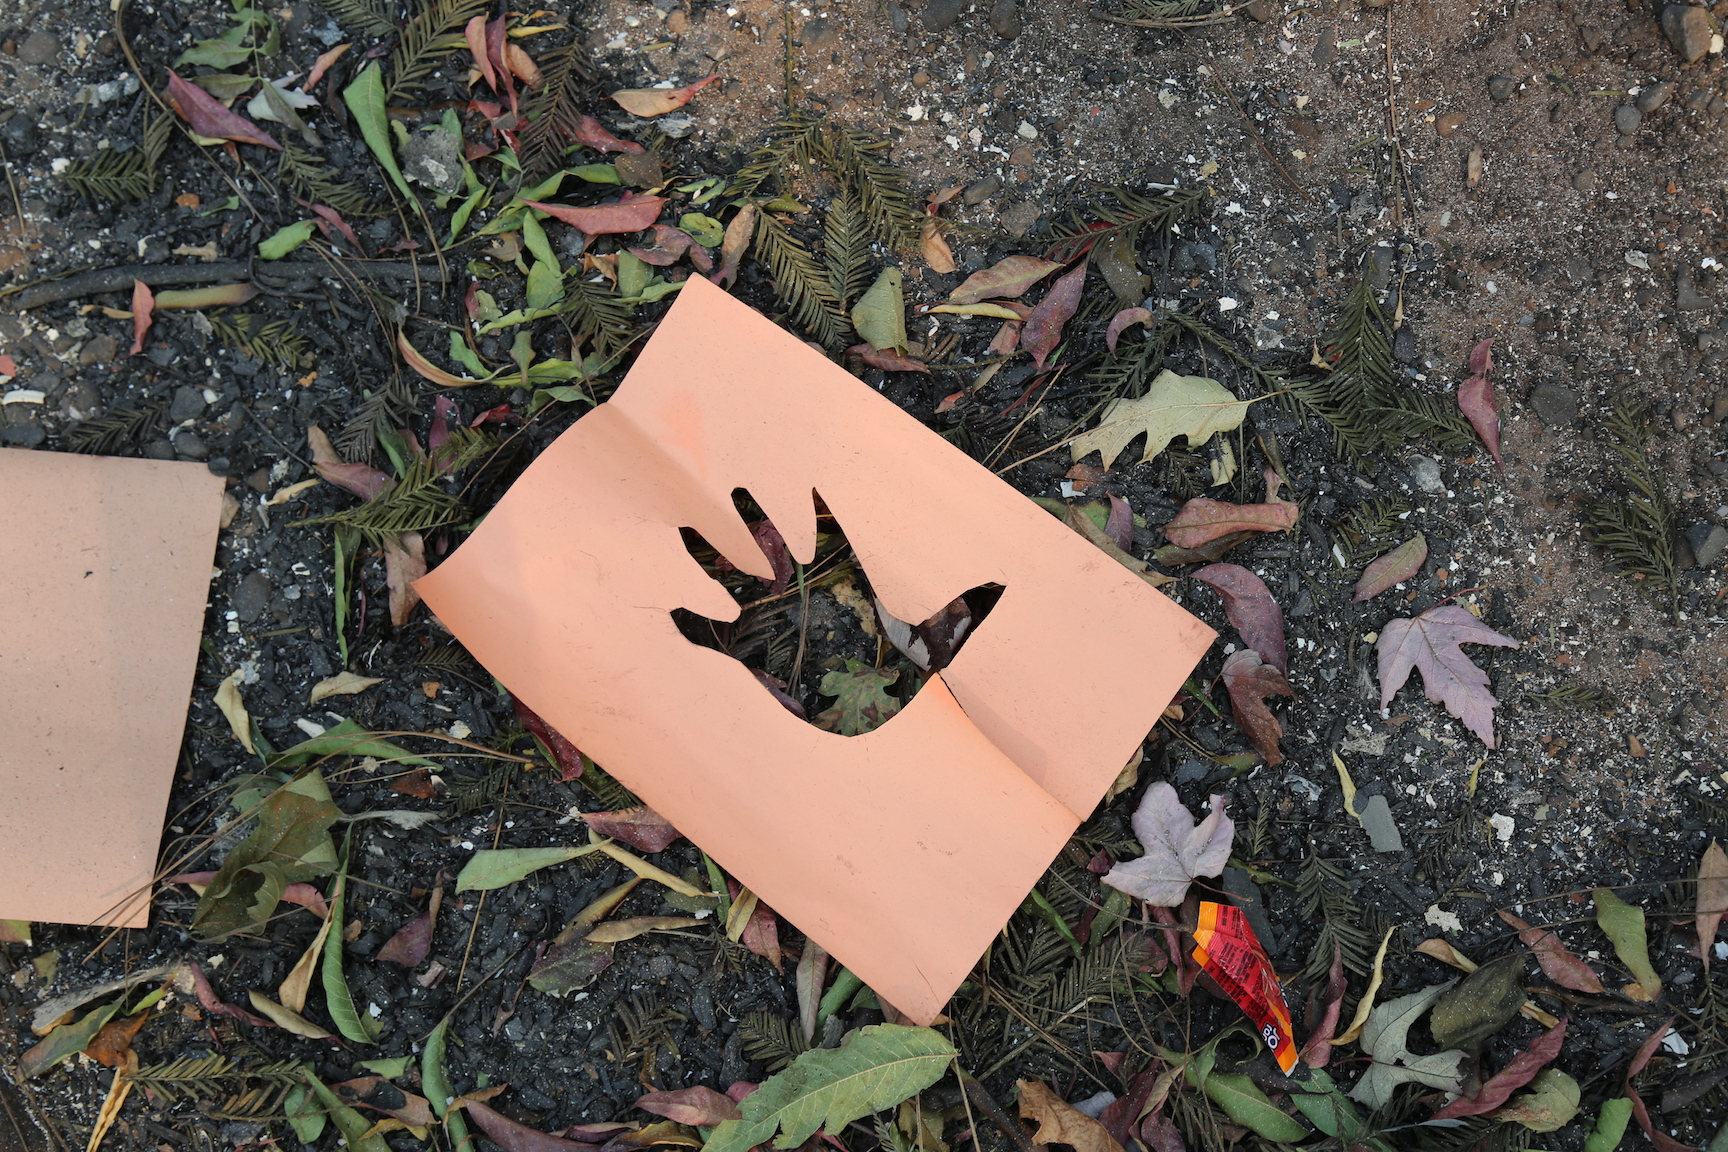 Though Paradise Elementary School's buildings were destroyed by Camp Fire, the blaze spared patches of the school yard, leaving candy wrappers and art projects, like this cutout of a child's hand.  Isabella Jibilian/Peninsula Press